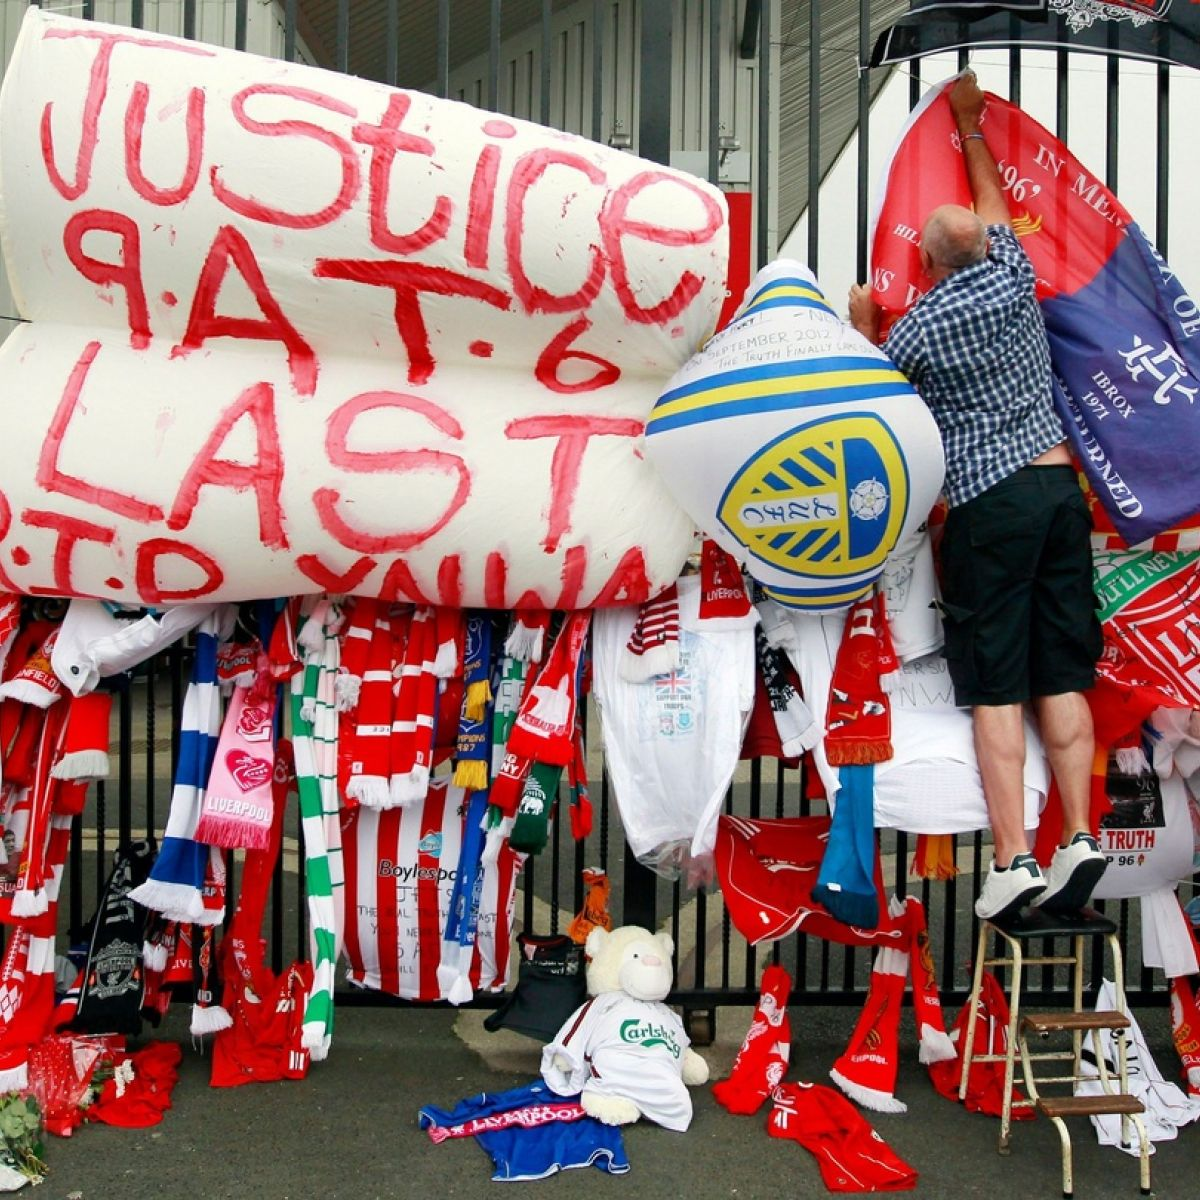 Hillsborough investigators pass 23 cases to CPS for possible charges